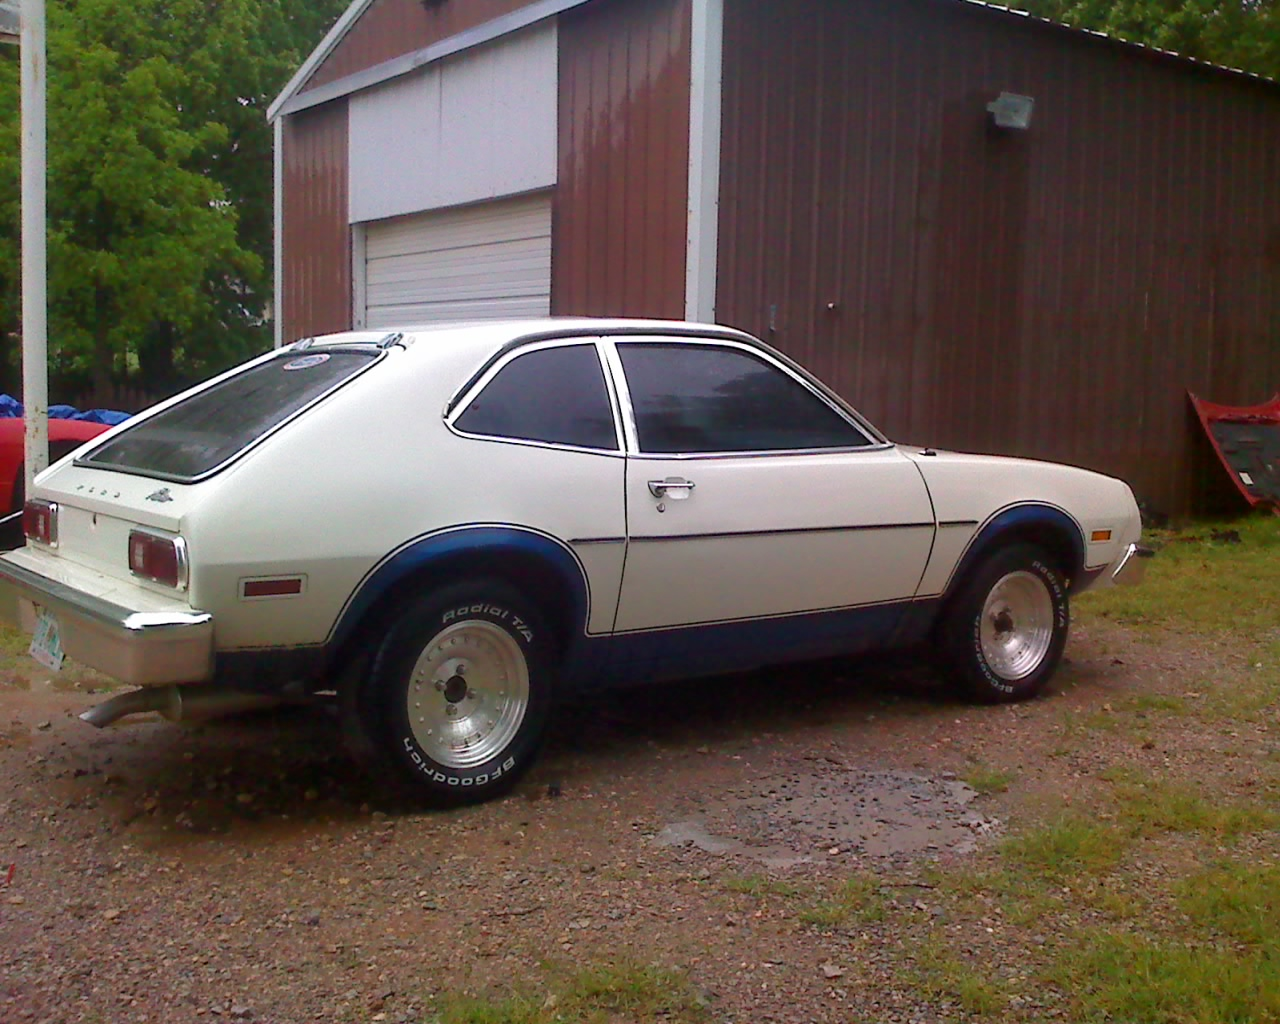 1978 Ford Pinto pony